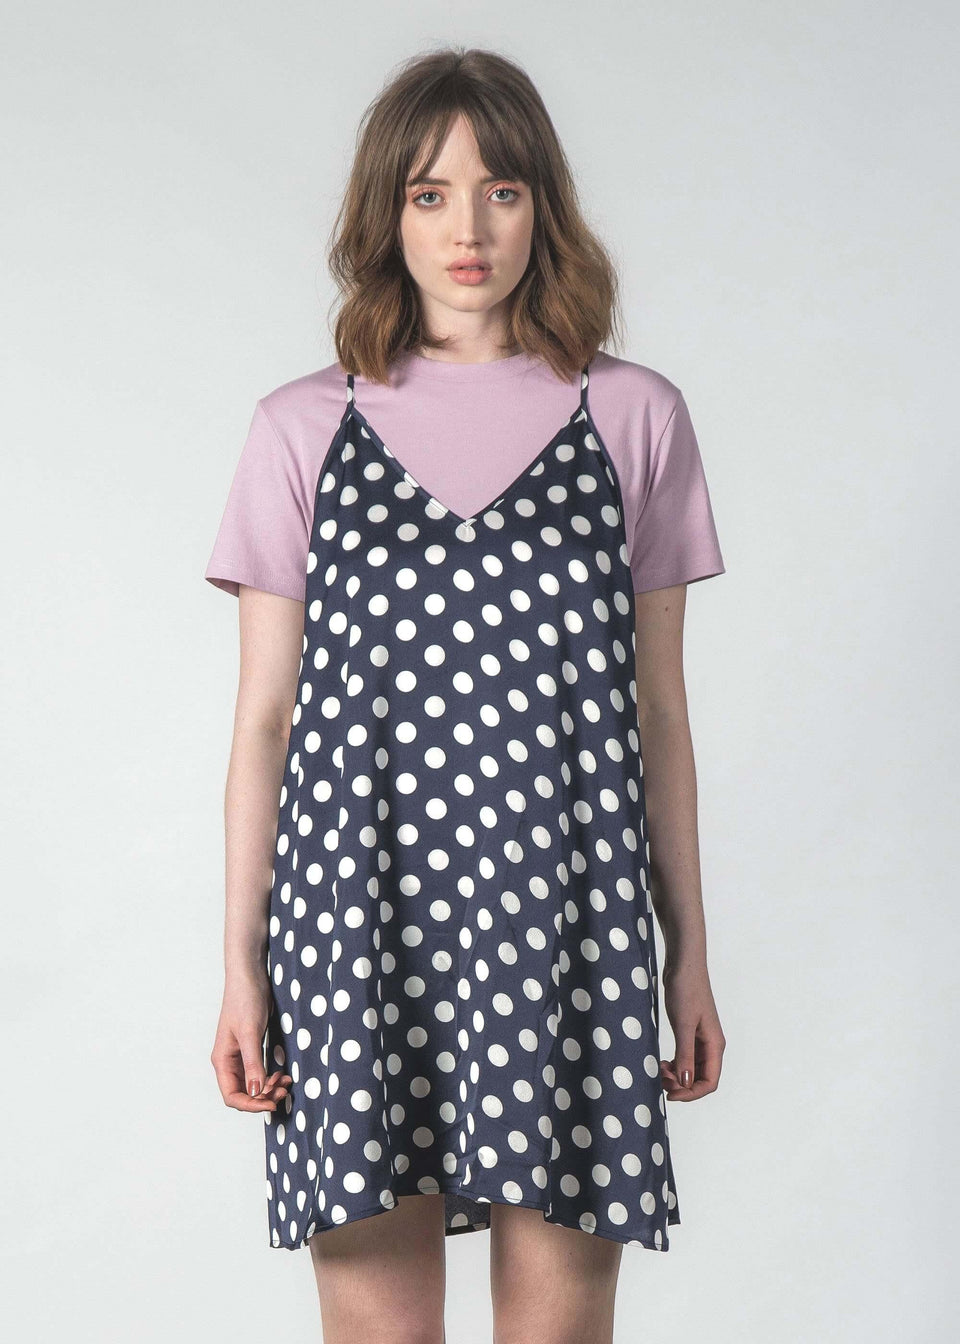 Finest Dress Polka Dot - Saint Street